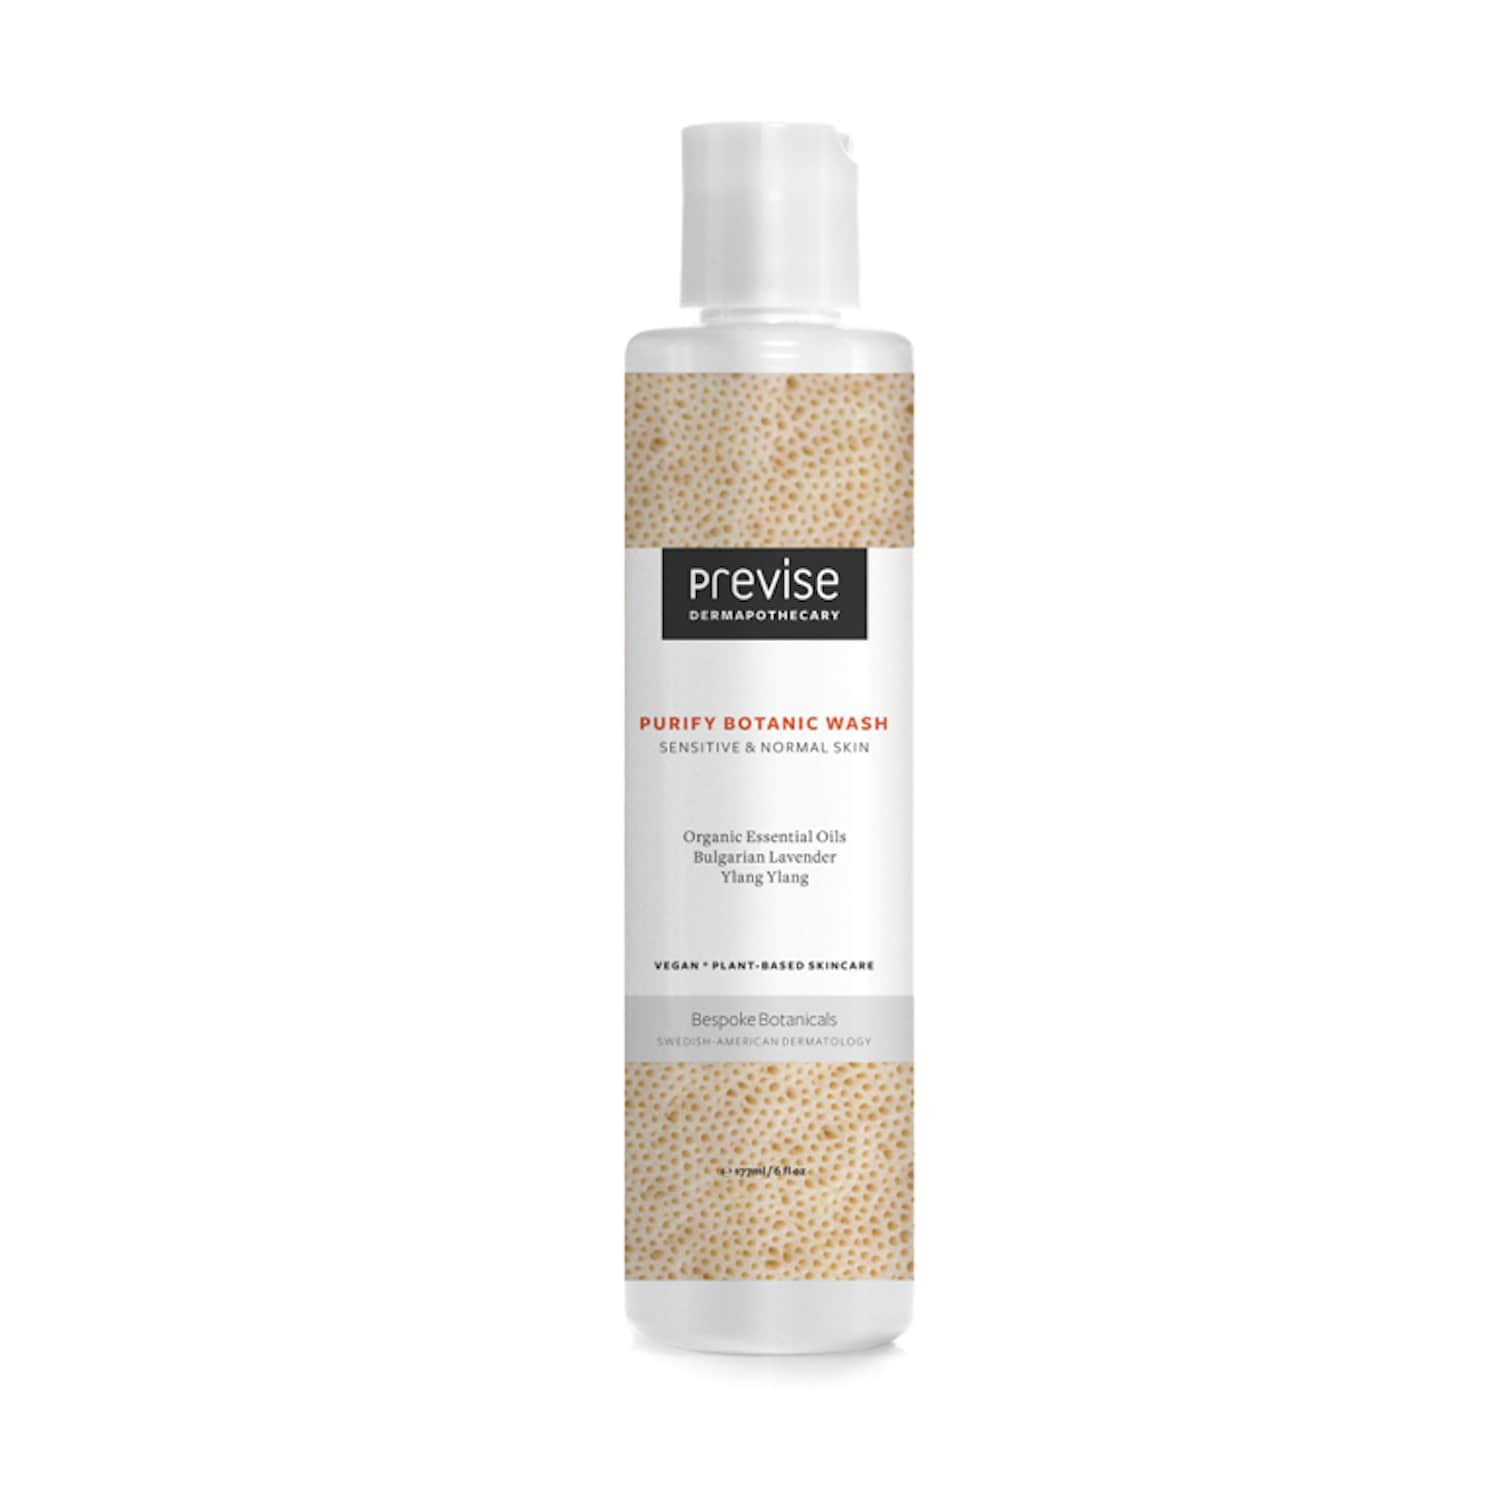 Purify Botanic Wash Sensitive & Normal Skin by Previse DermApothecary  Skincare